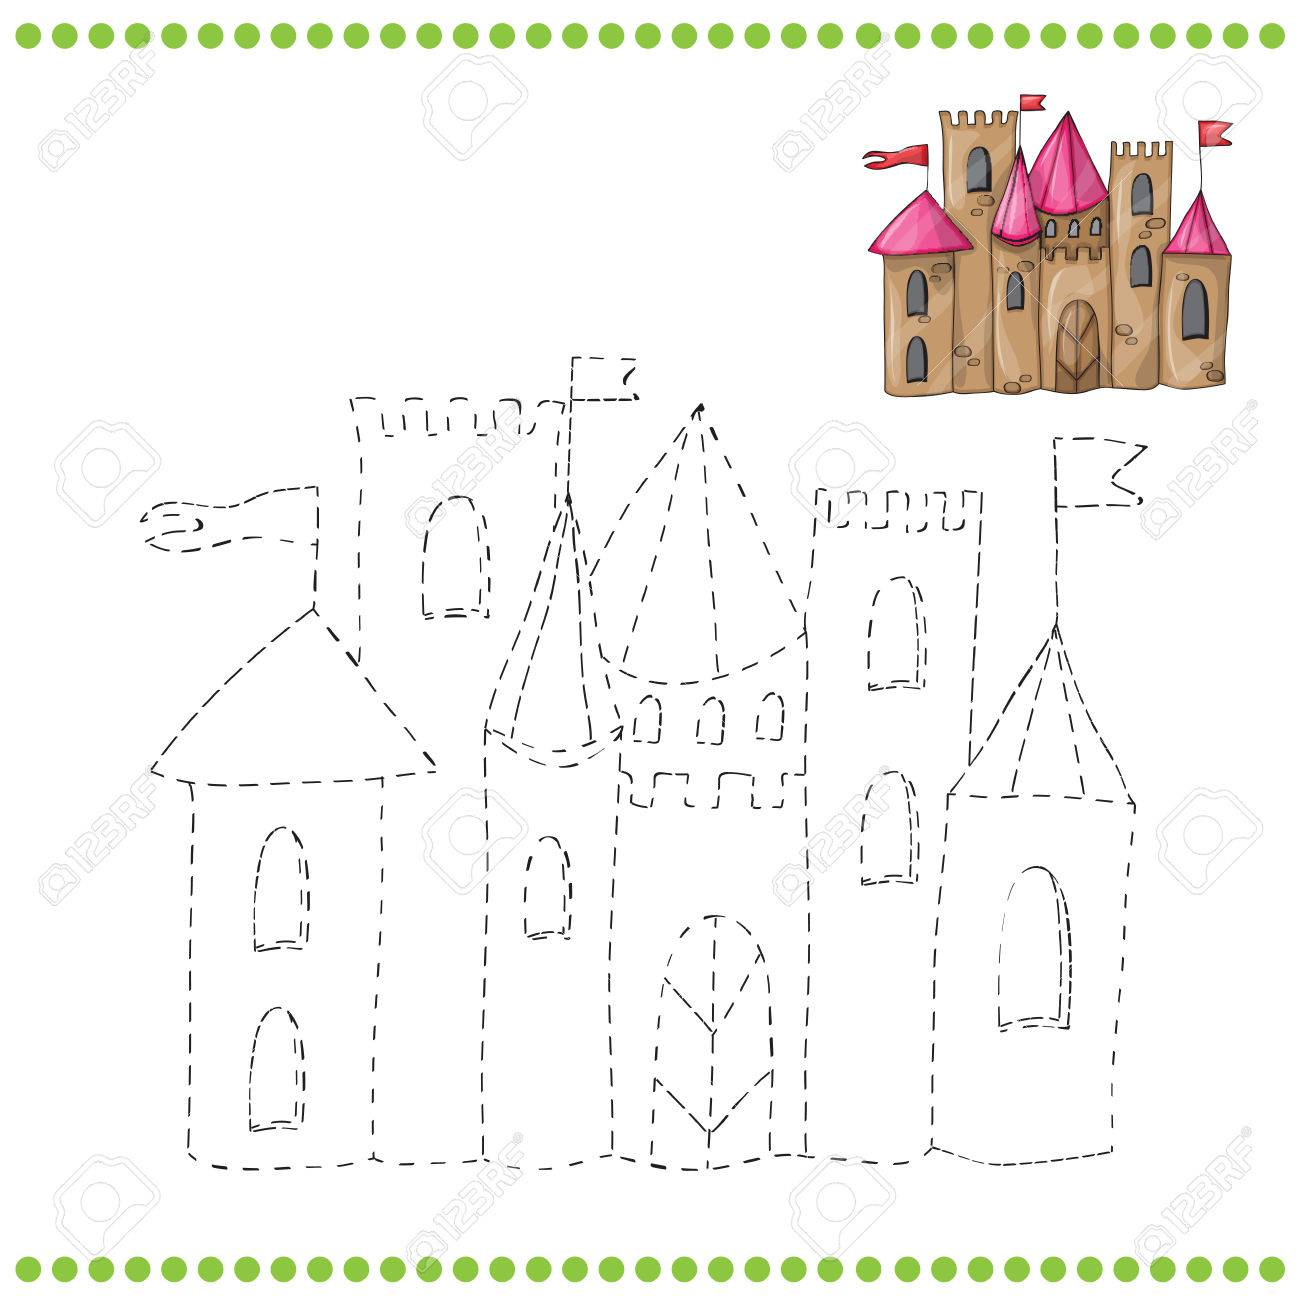 connect the dots and coloring page castle royalty free cliparts